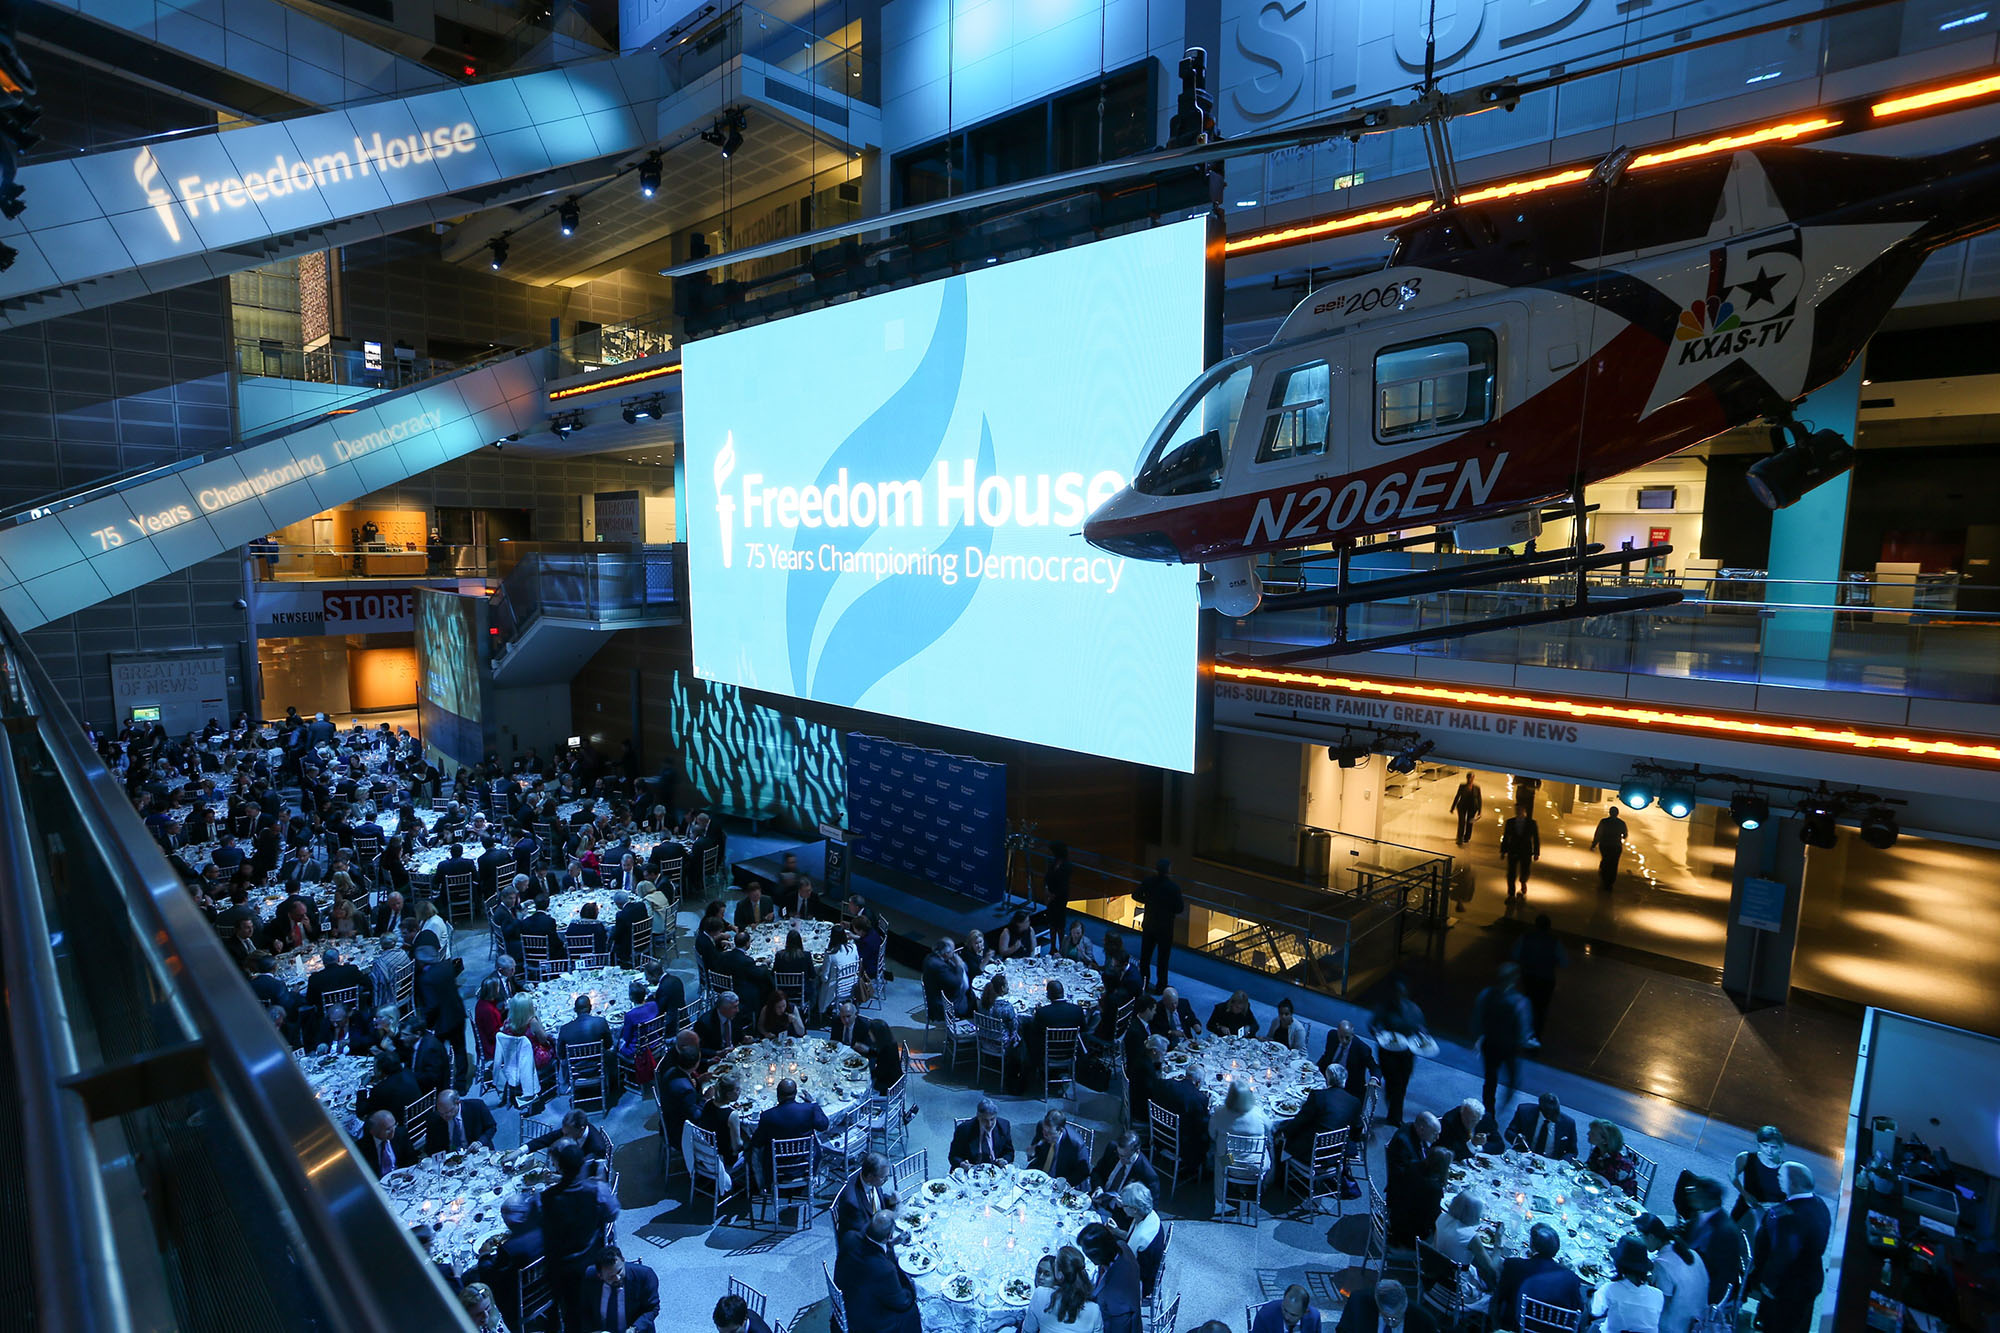 Freedom House 75th anniversary gala championing democracy